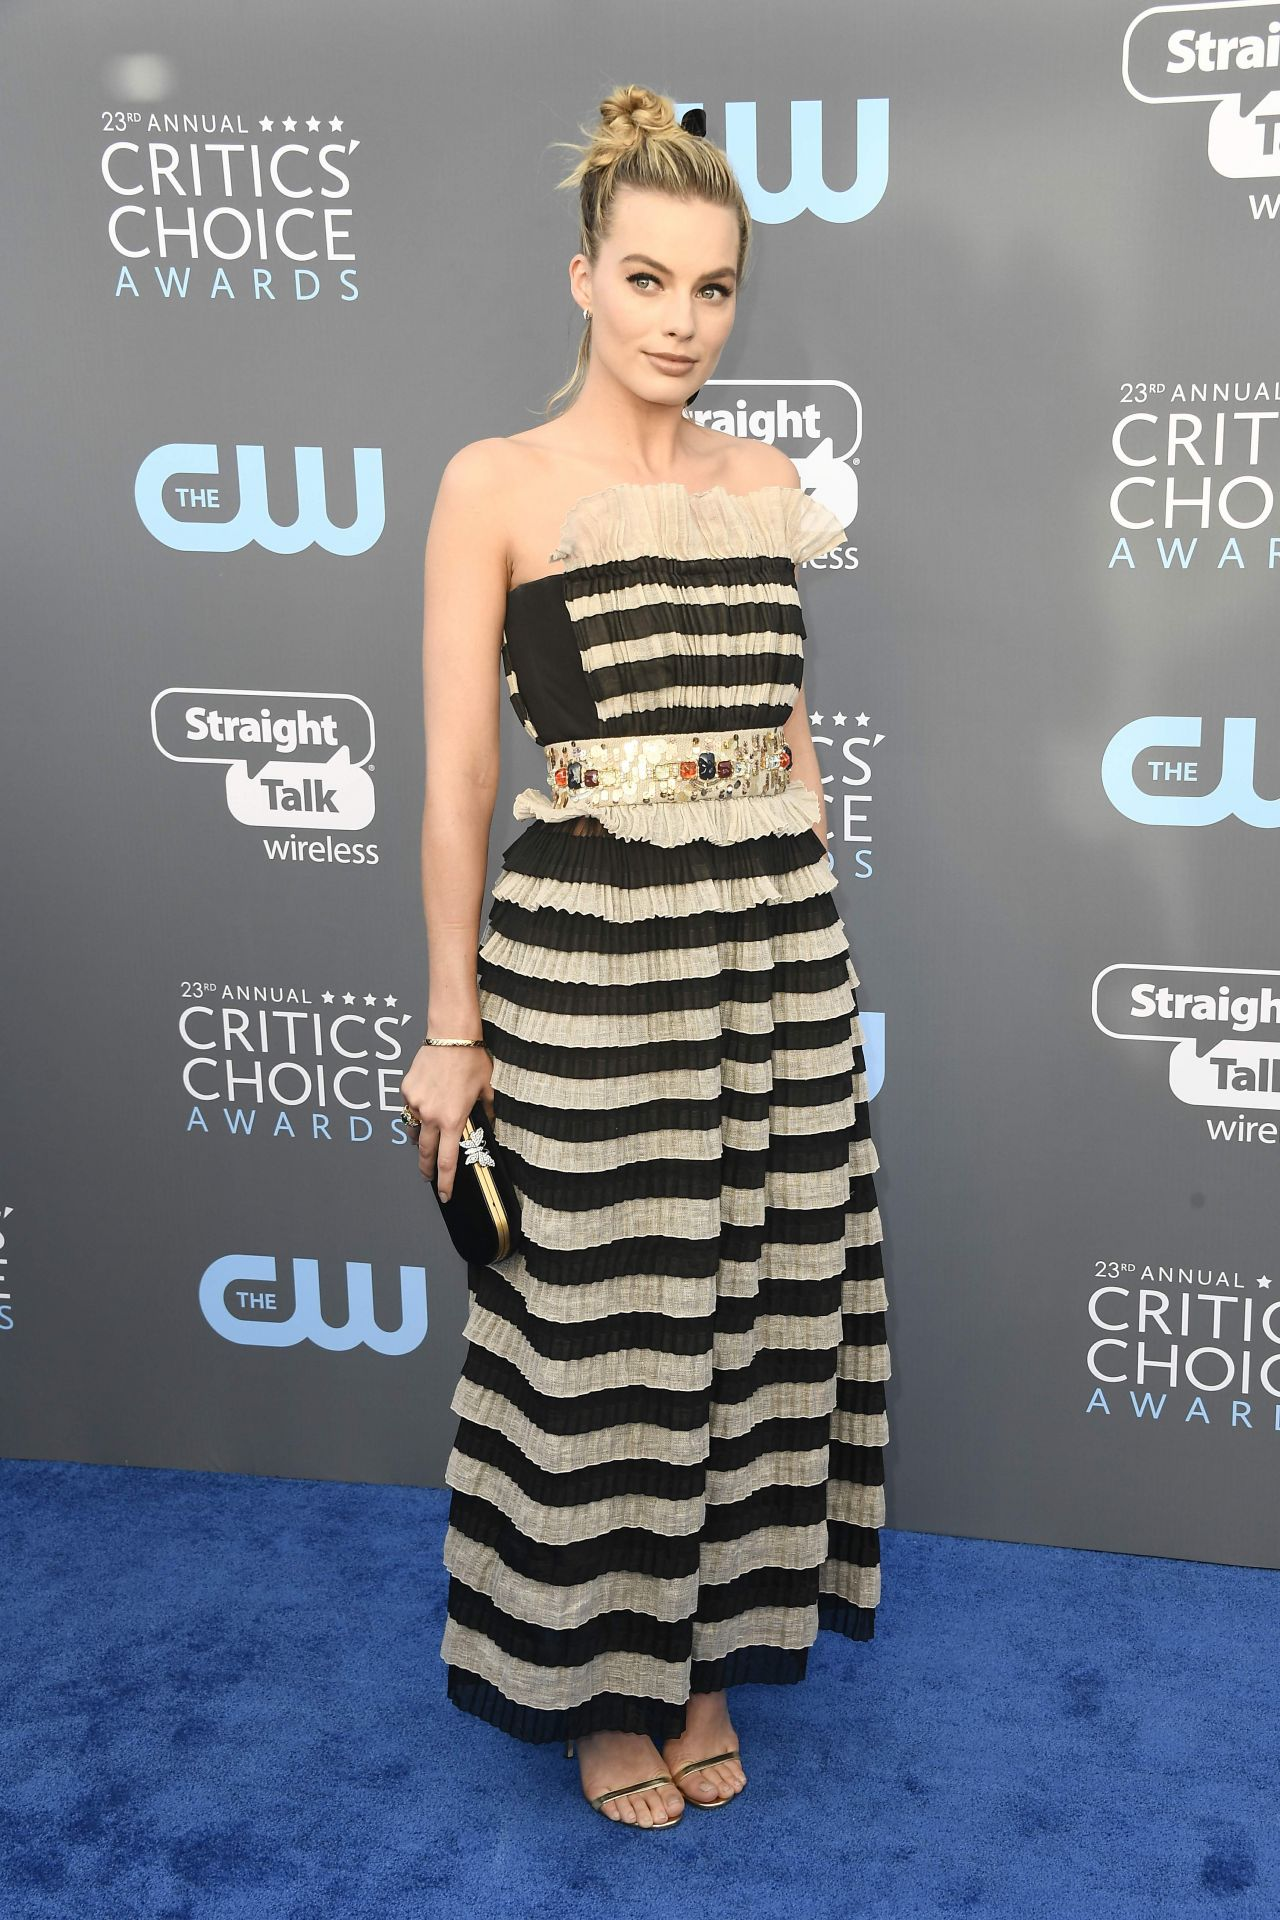 http://celebmafia.com/wp-content/uploads/2018/01/margot-robbie-2018-critics-choice-awards-18.jpg